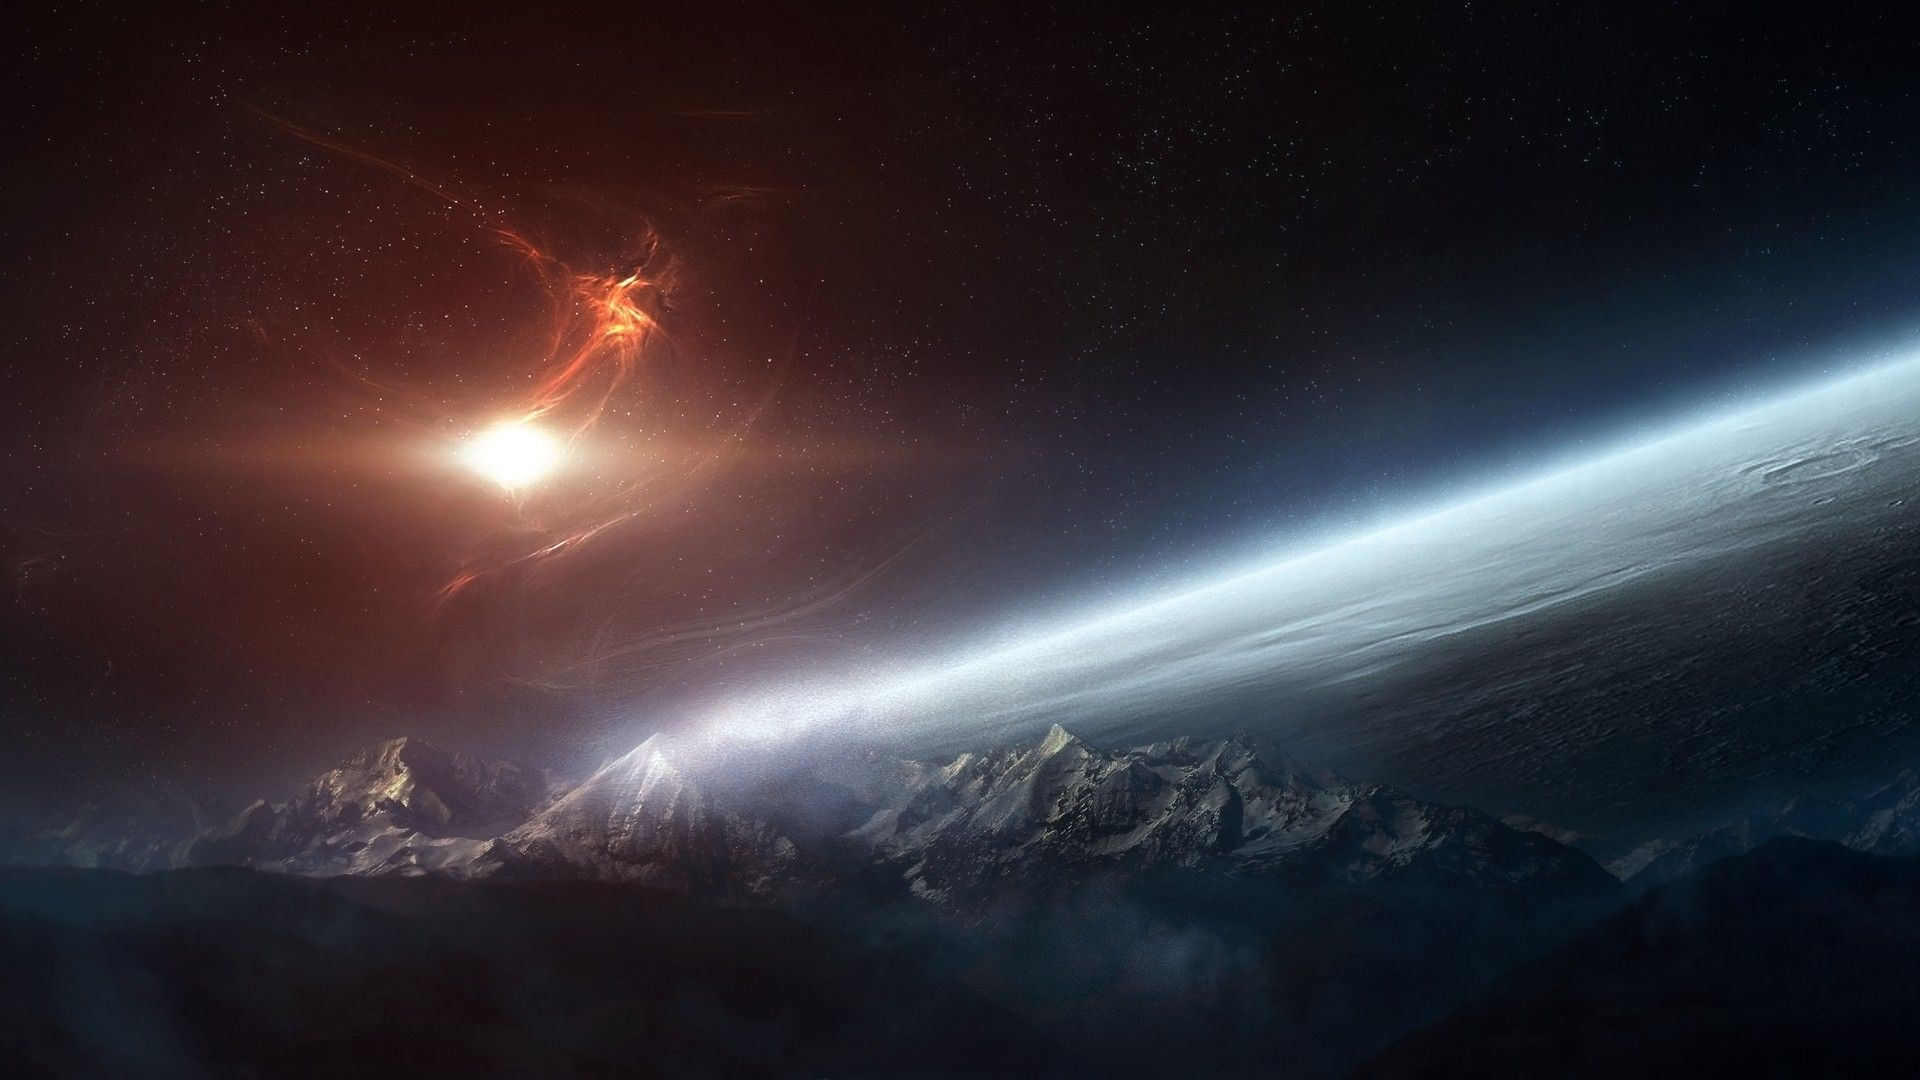 space wallpaper |  outer space hd wallpaper » fullhdwpp - full hd